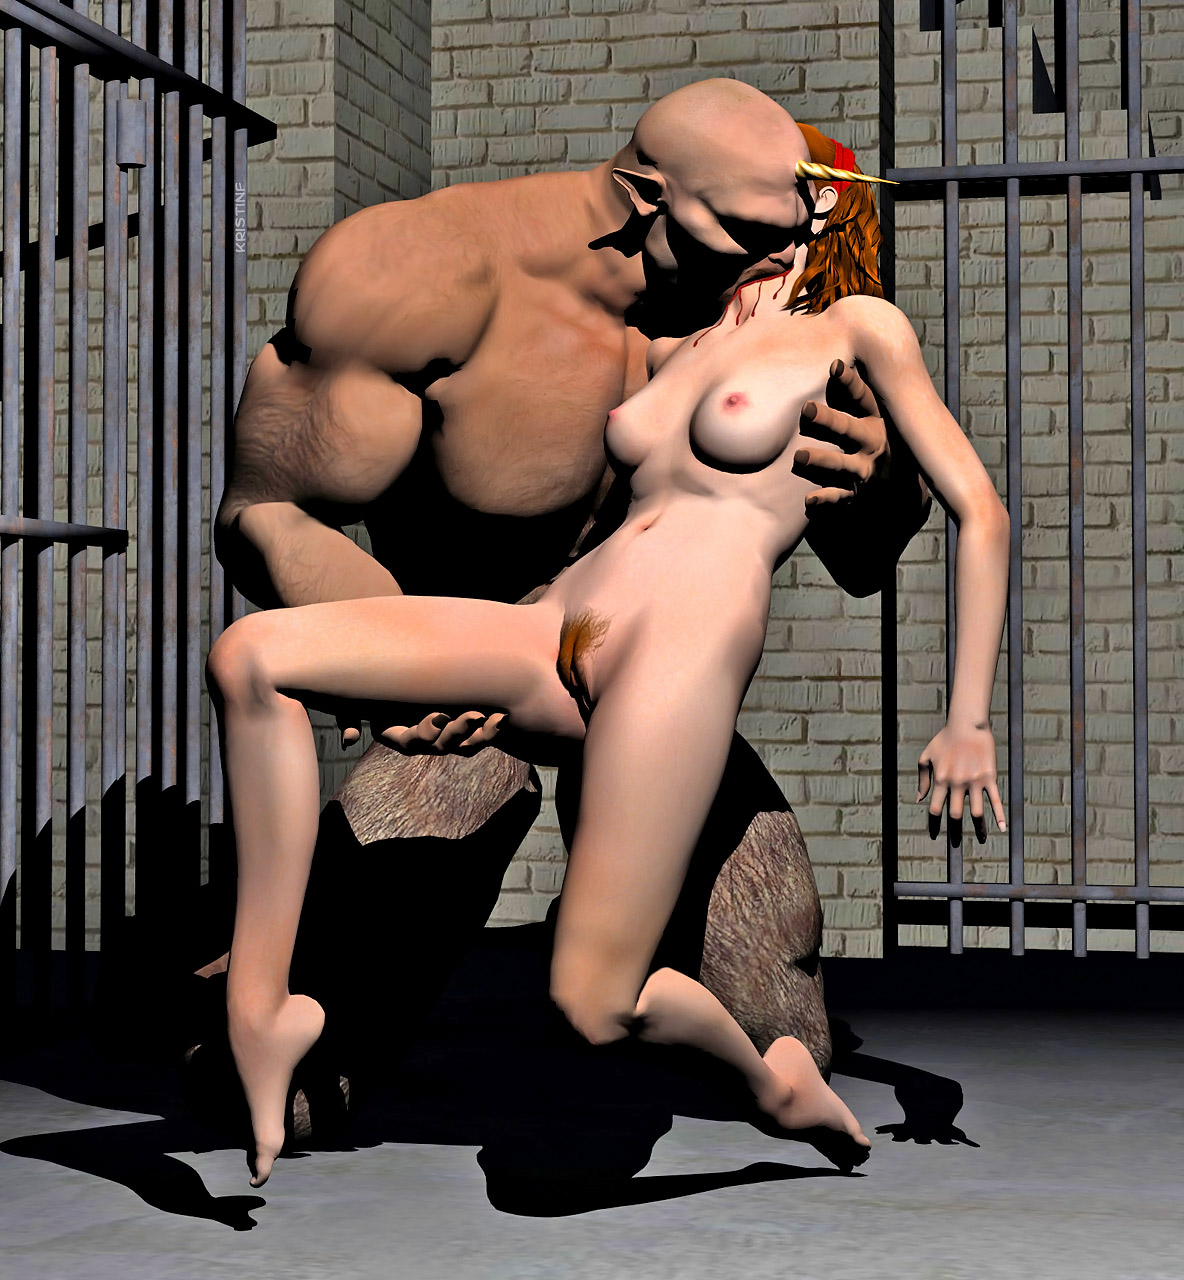 Fucked by monsters fantasy story sexy pics